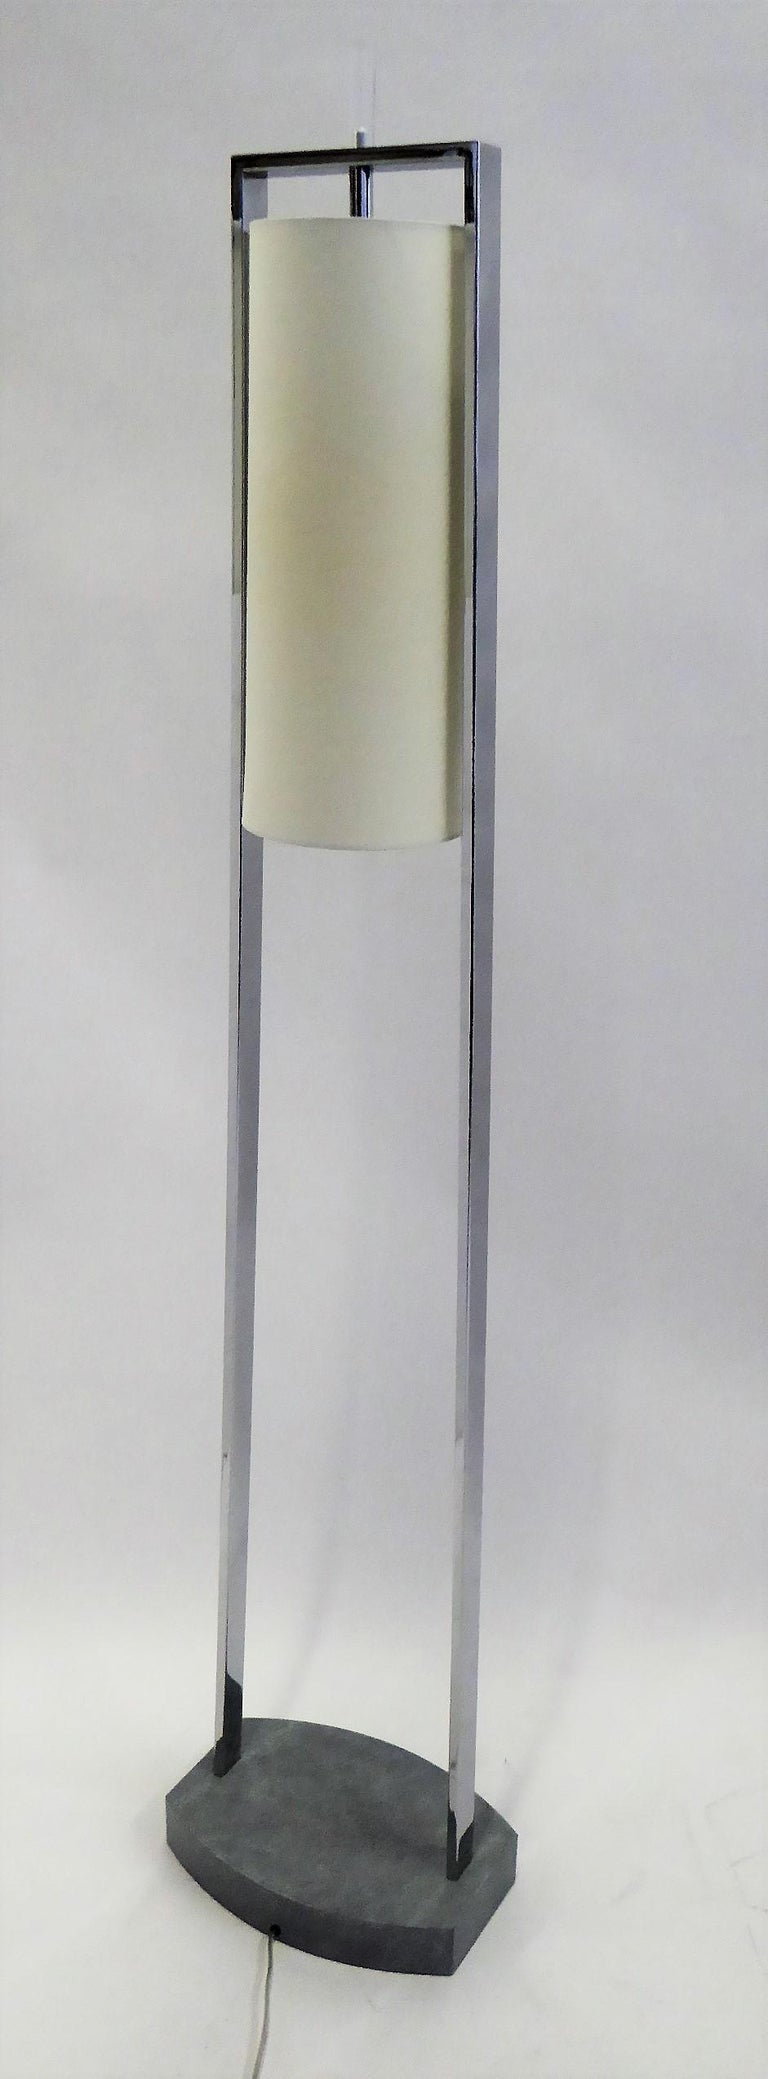 American 1990s Modern Minimalist Chrome Standing Floor Lamps in the Style of Paul Mayen For Sale